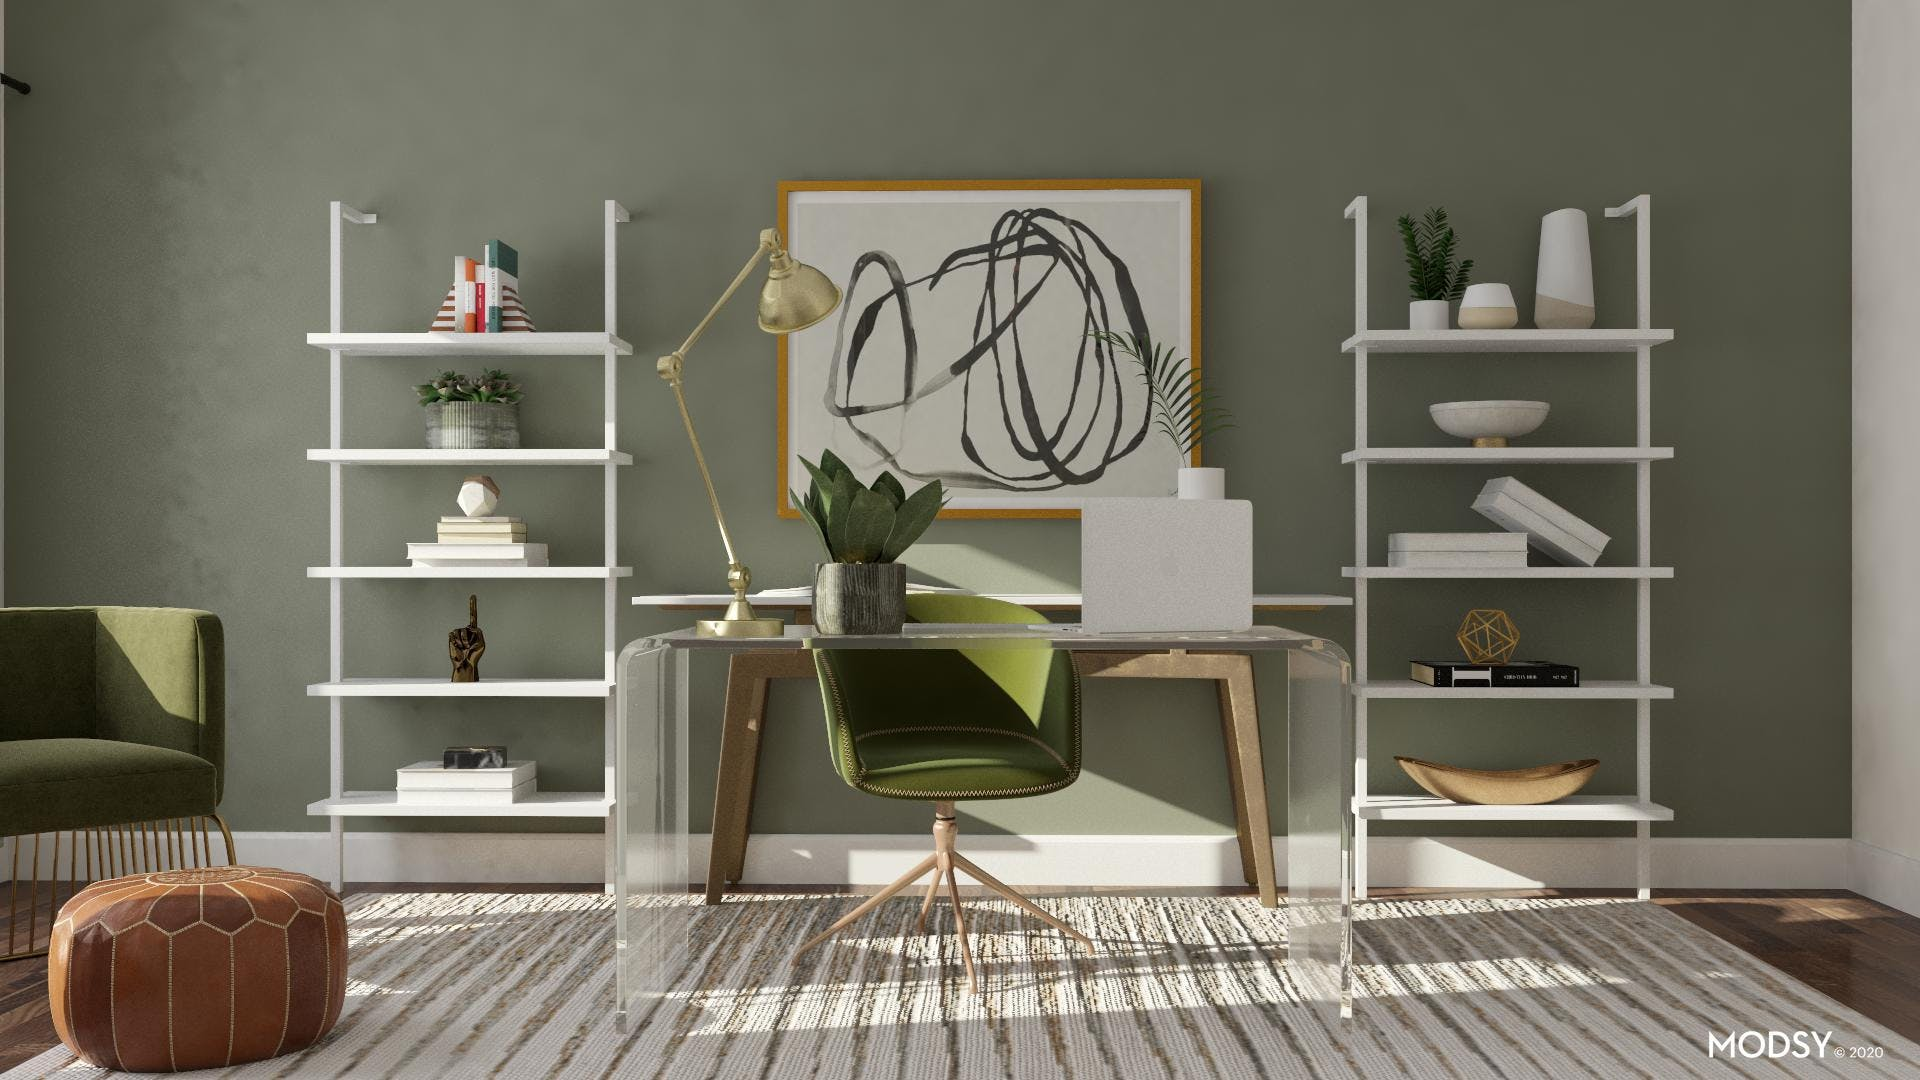 Green Minimalism in Home Office